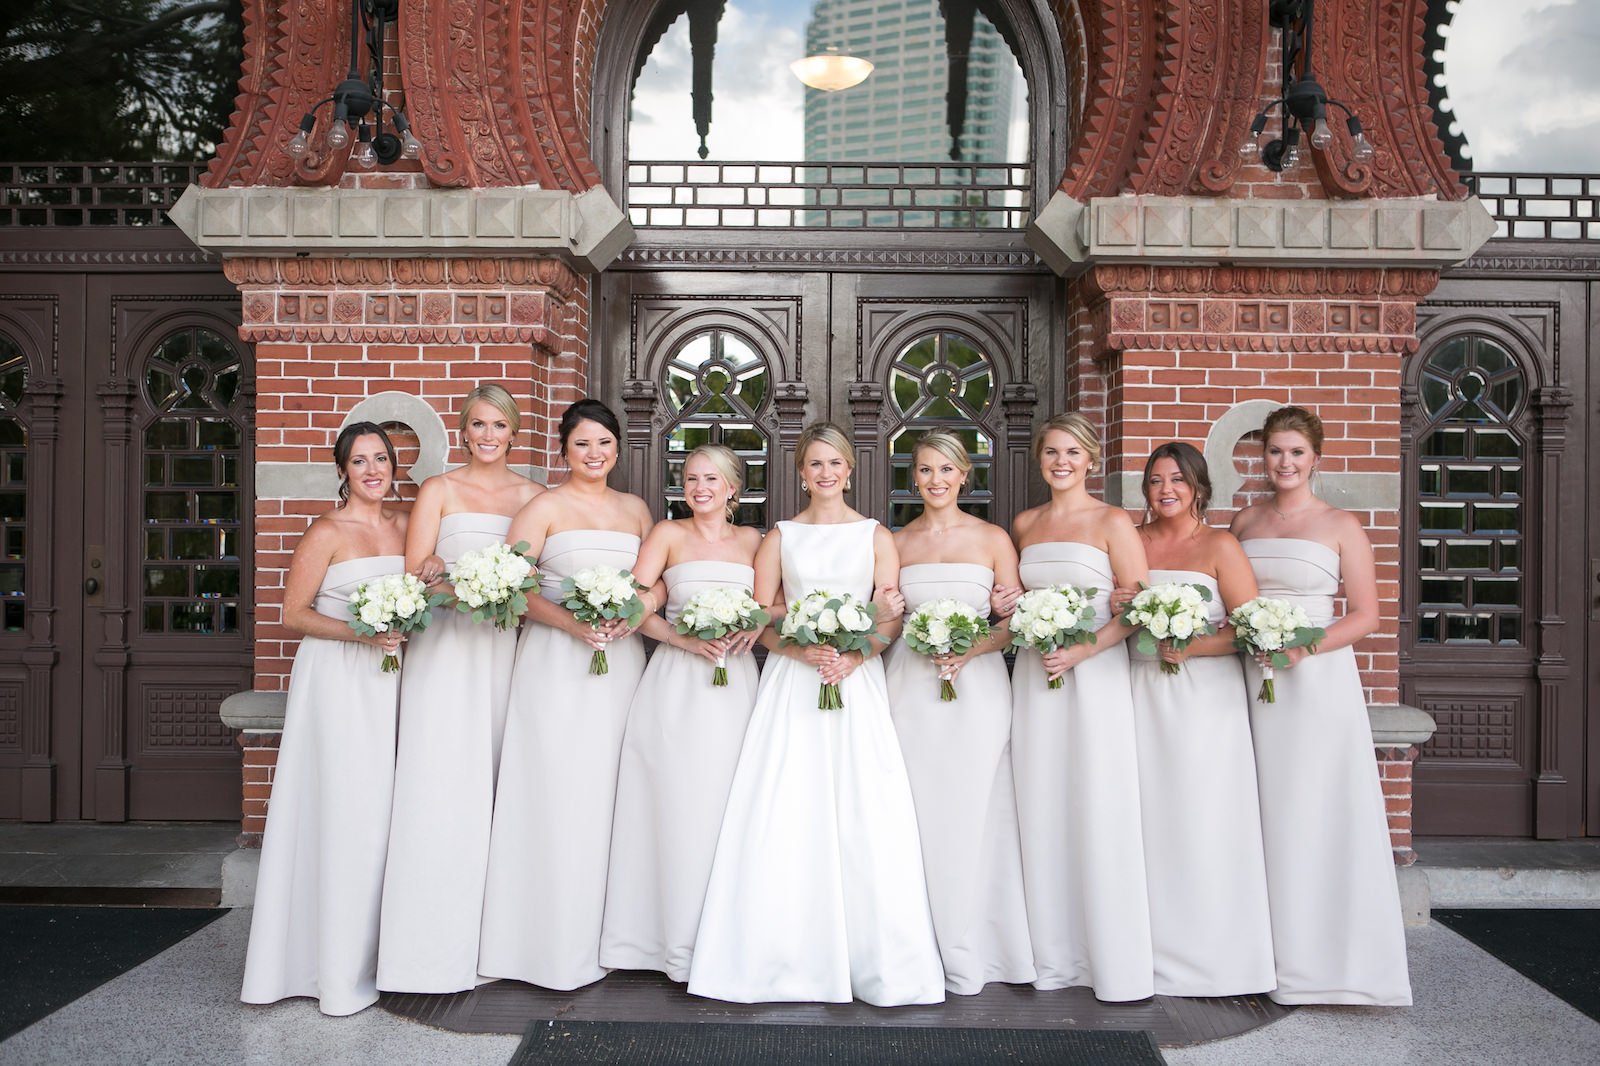 Bridal Party Outdoor Portrait in Downtown Tampa at Plant Museum UT | Bateau Neck Mikado Satin Martina Liana Simple Elegant Wedding Dress with Buttons Down Back | Neutral White Rose and Greenery Bouquets | Strapless Taupe Neutral Bridesmaid Dresses by Amsale | Carrie Wildes Photography